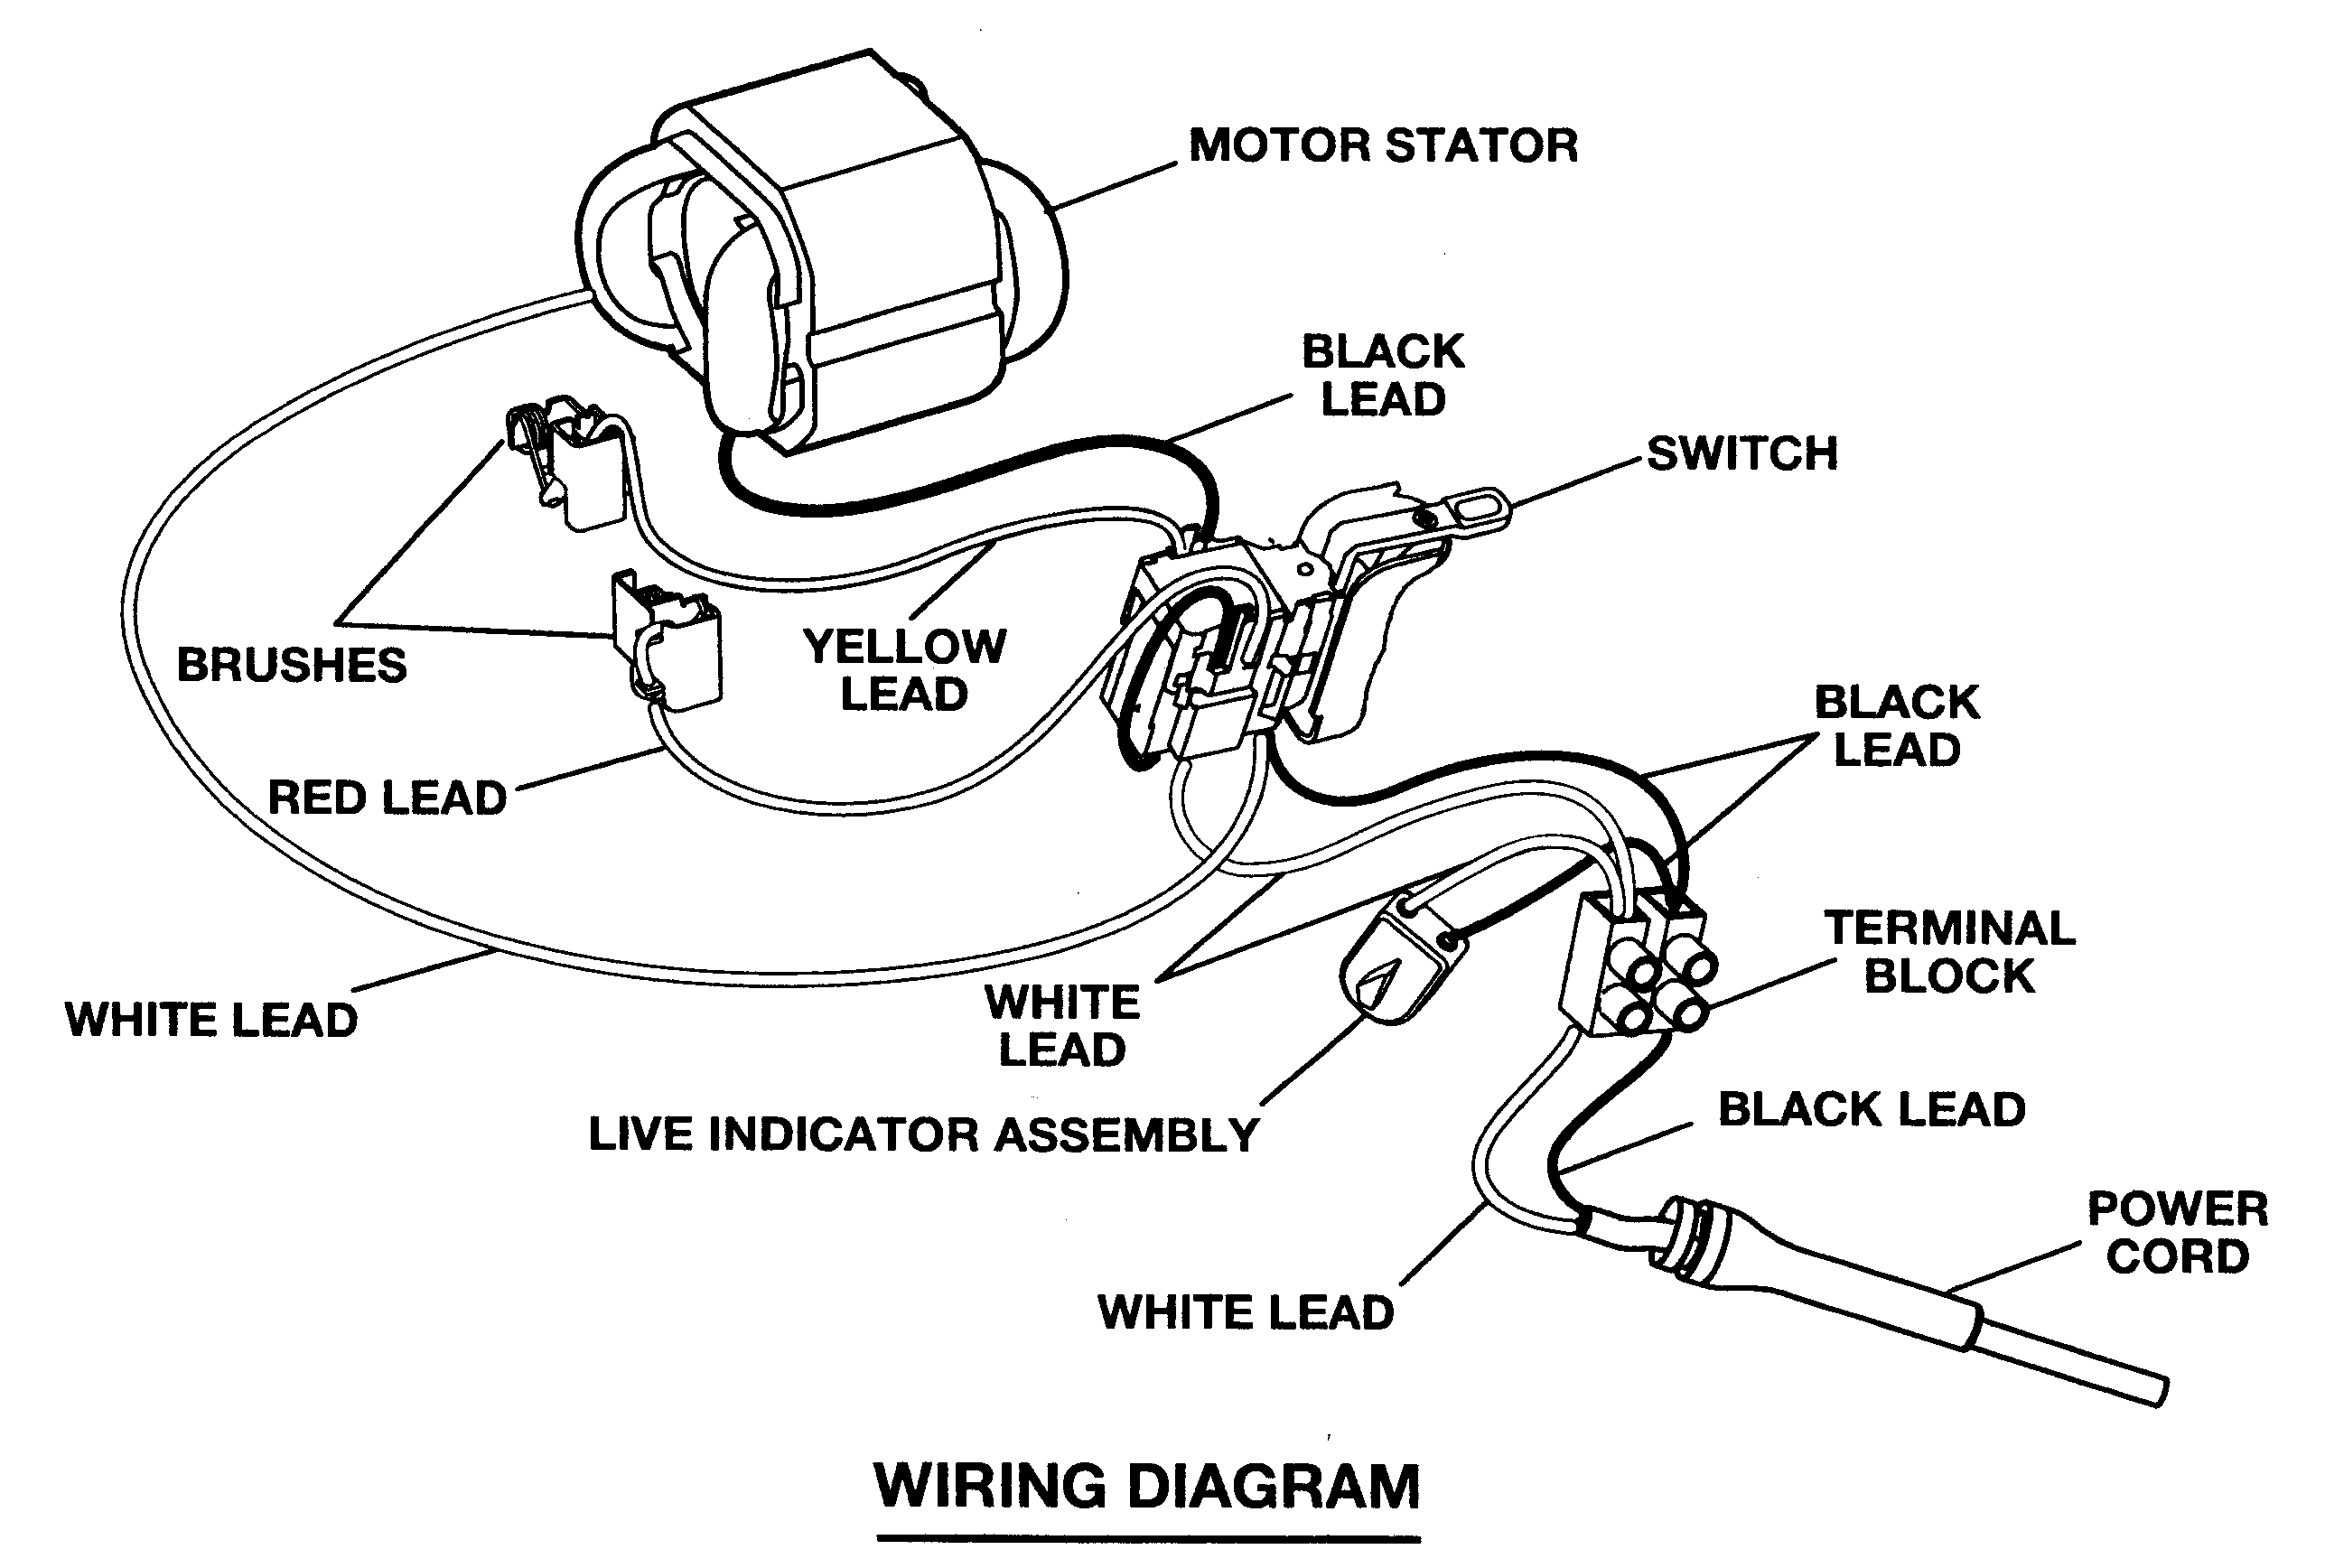 Todo Craftsman Drill Press Motor Wiring Diagram